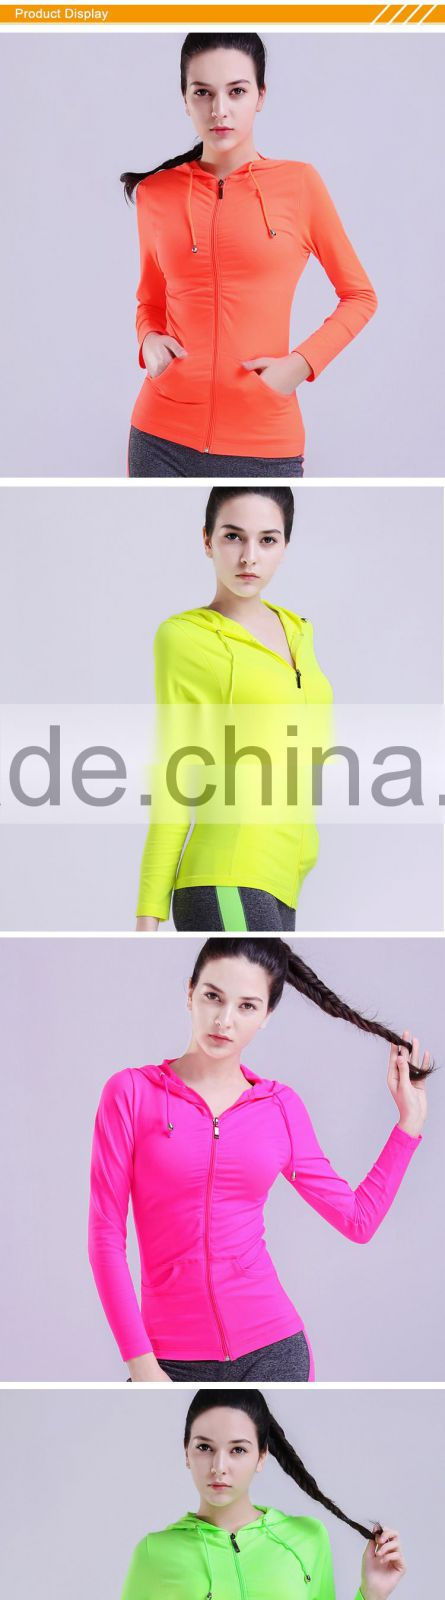 Hsz-102 China Wholesale Women Gym Sports wear overcoat sports tracksuits yoga clothing for ladies running clothes